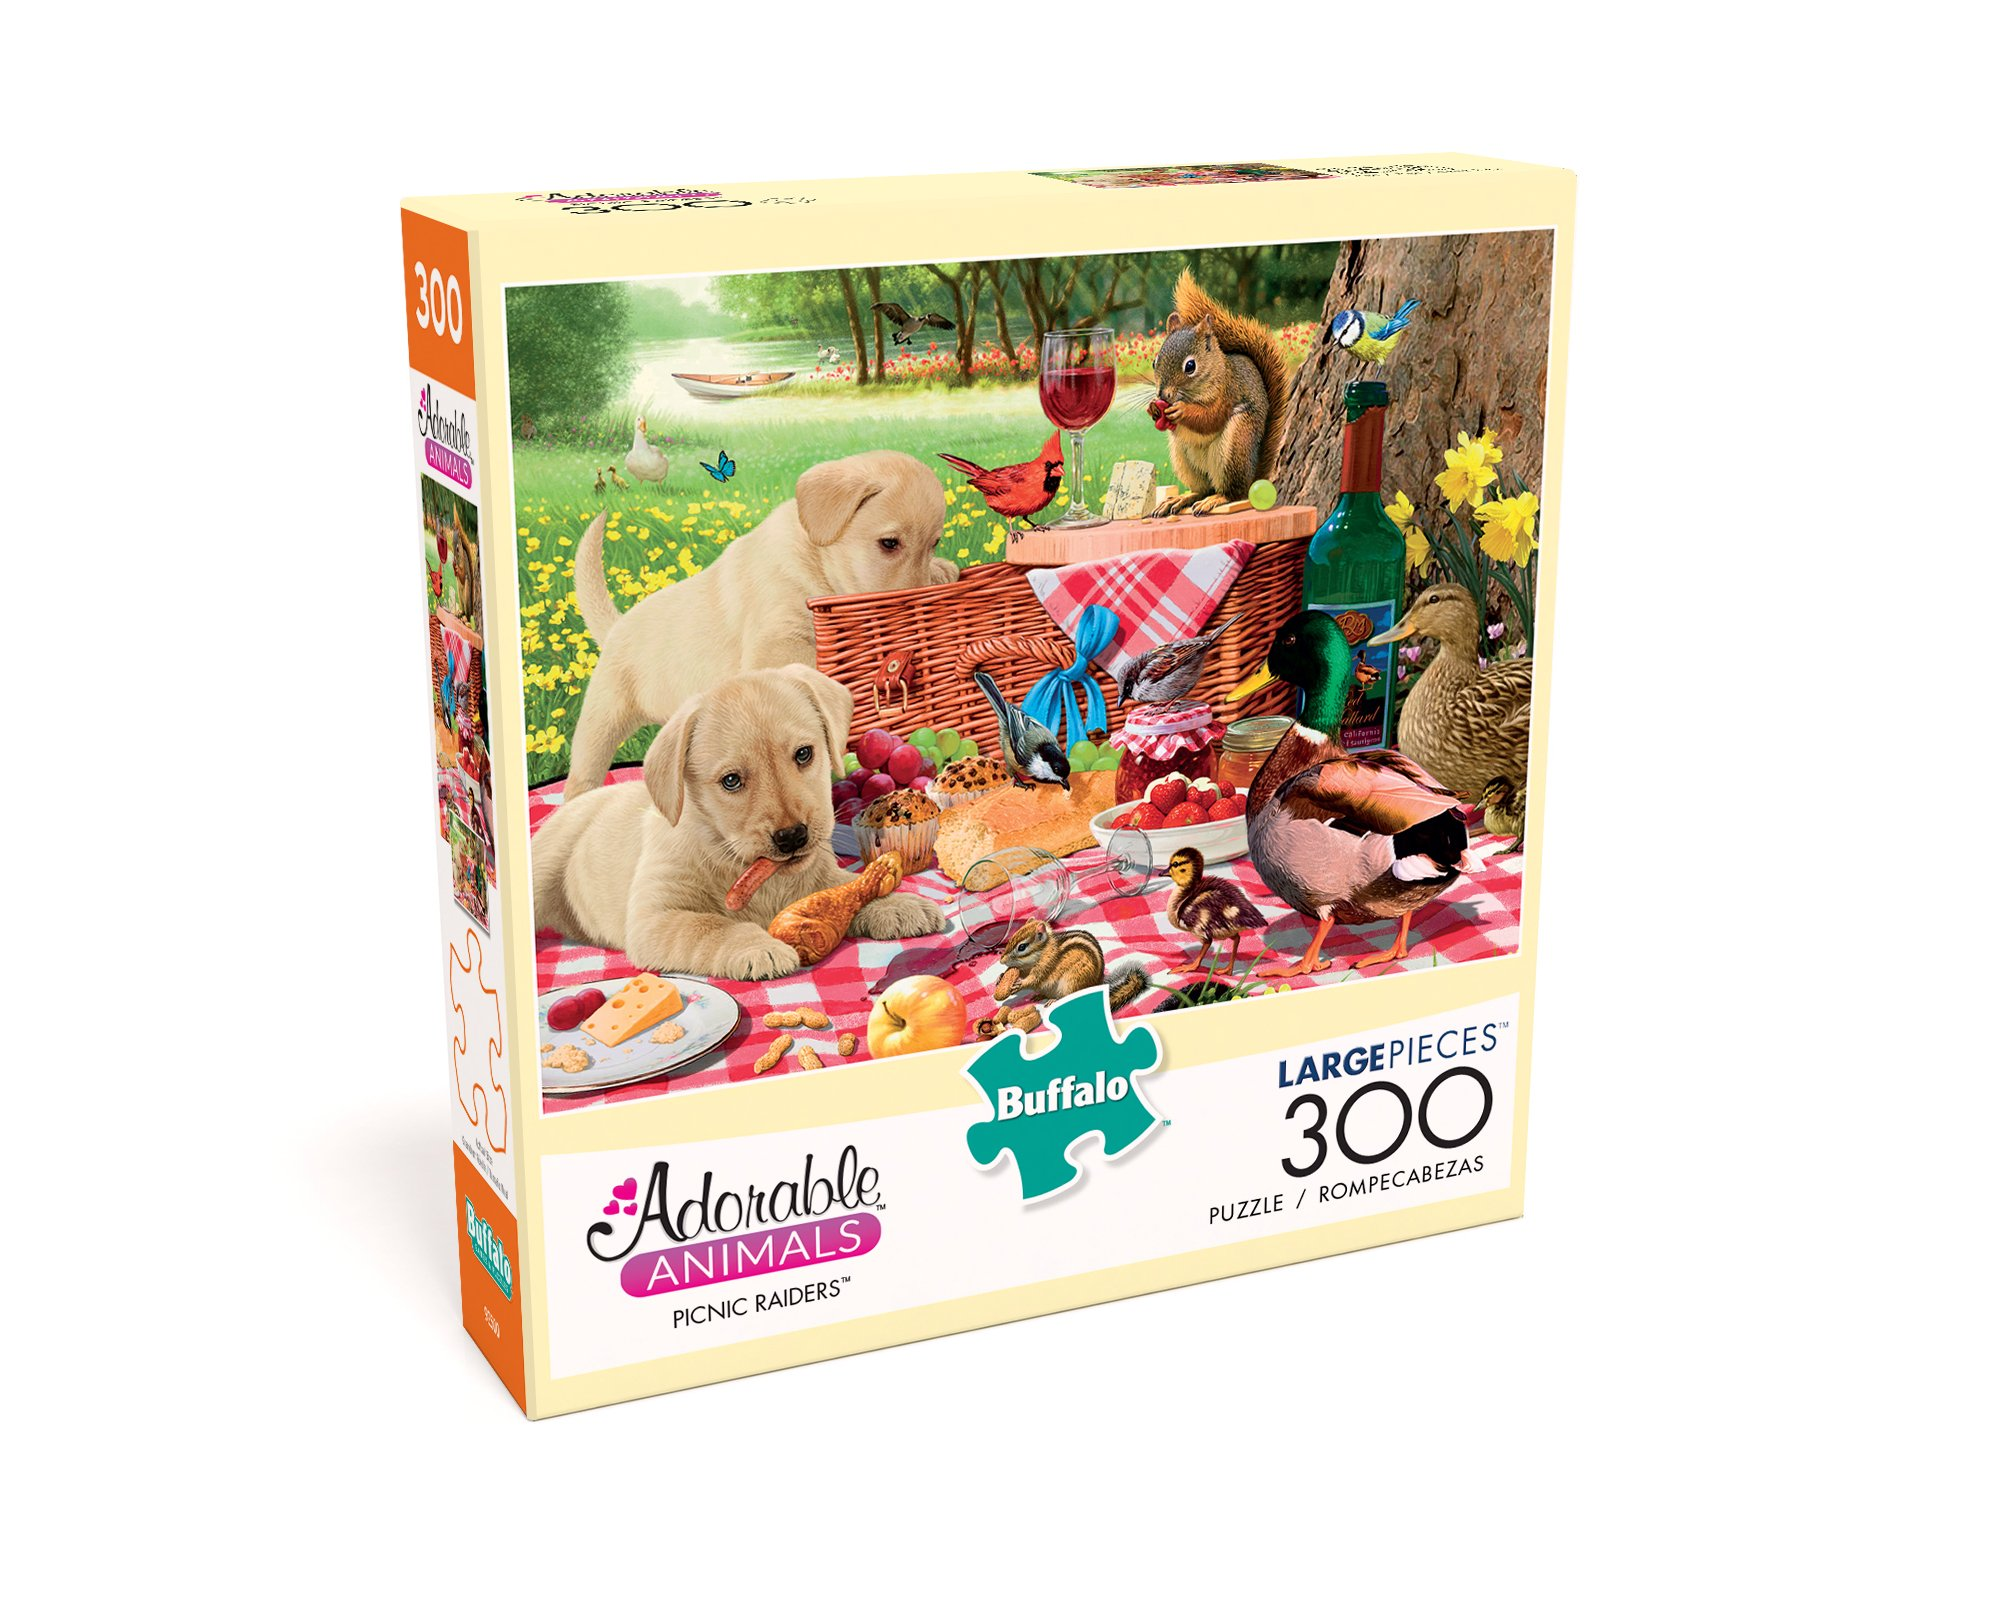 Buffalo Games - Adorable Animals - Picnic Raiders - 300 Large Piece Jigsaw Puzzle by Buffalo Games (Image #3)